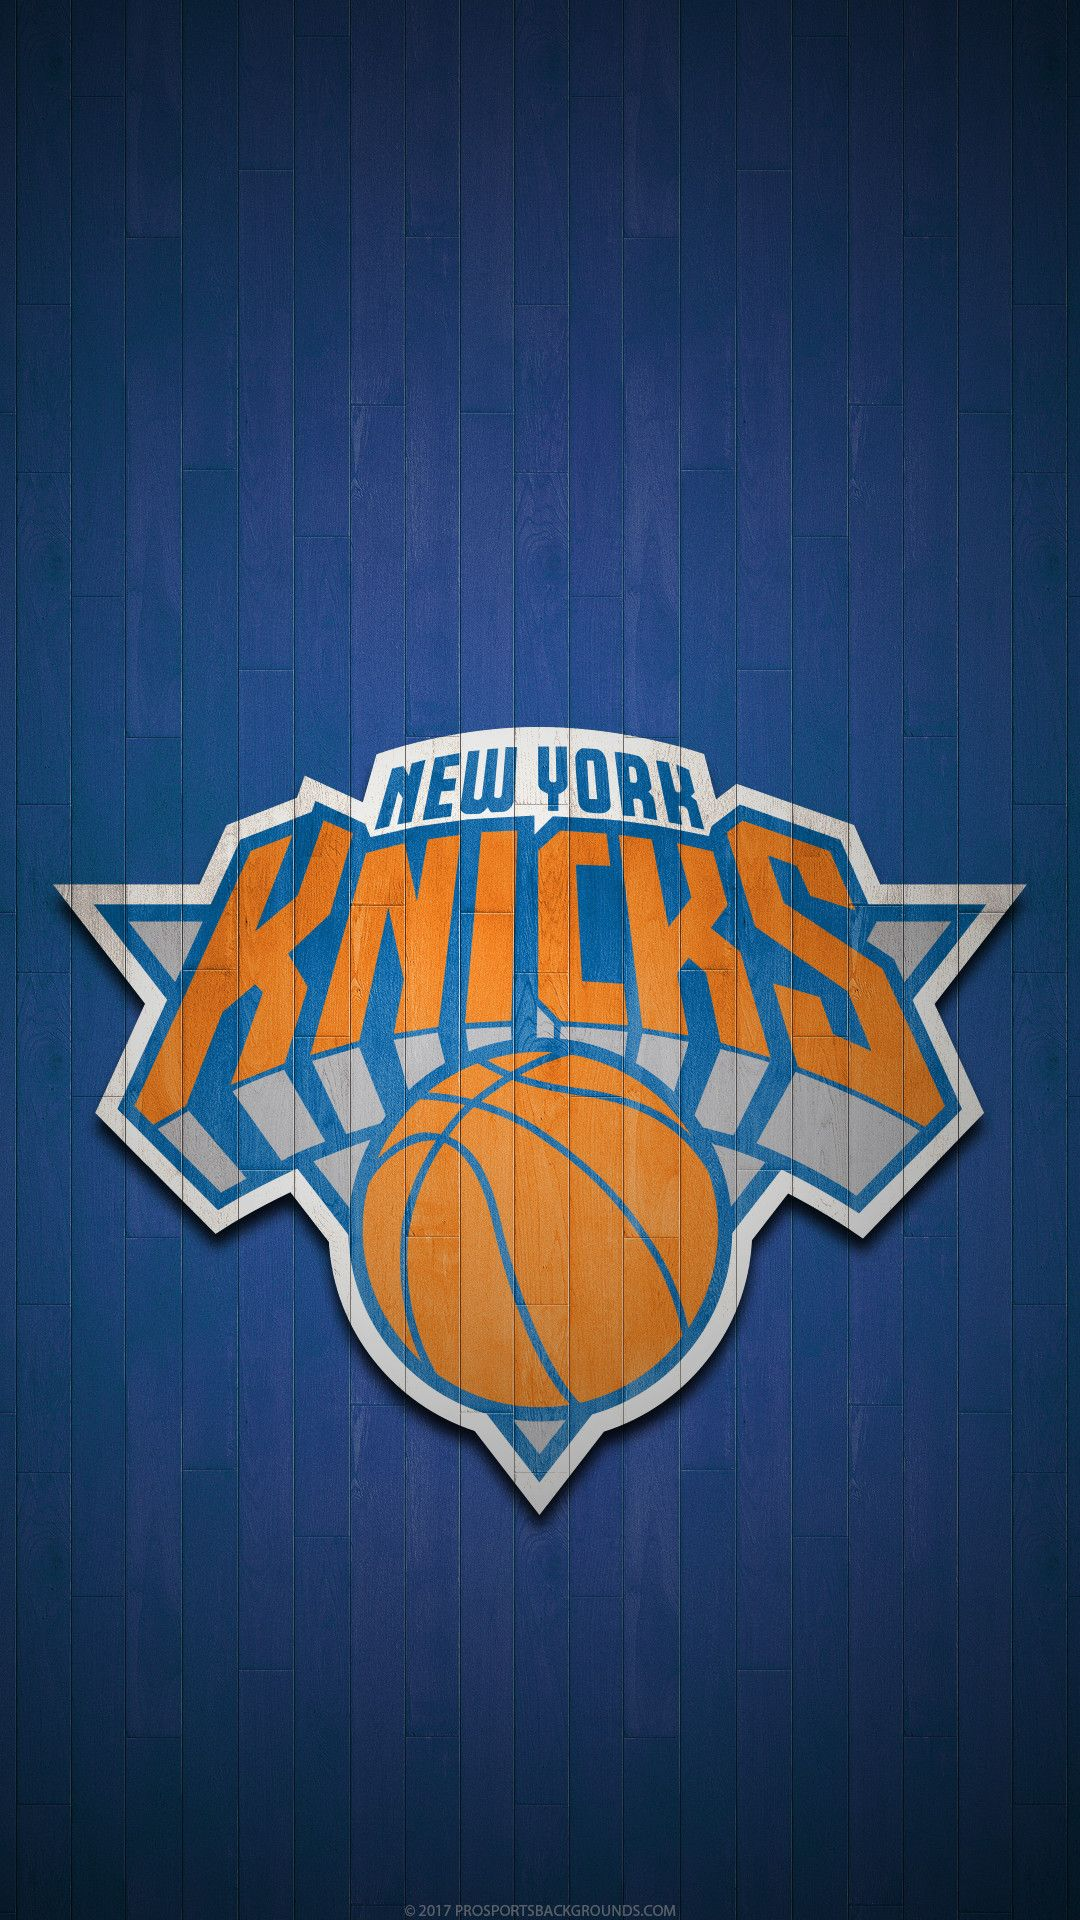 78 Knicks Iphone Wallpapers On Wallpaperplay In 2020 New York Knicks Logo New York Knicks Knicks